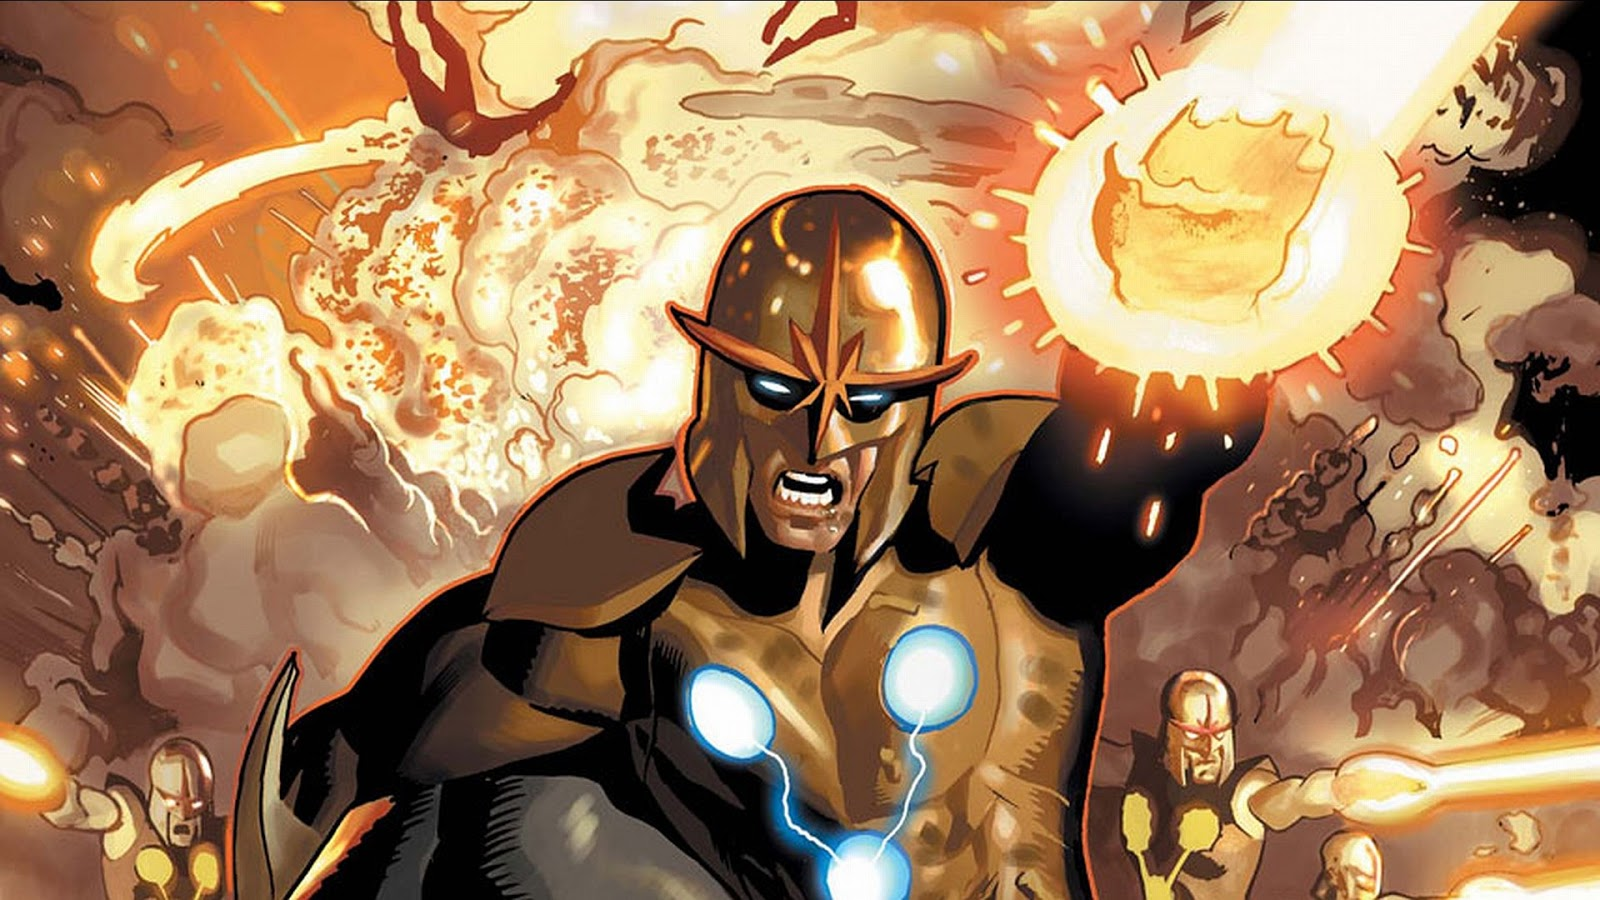 Marvel Studios would be working on a new project based on Nova